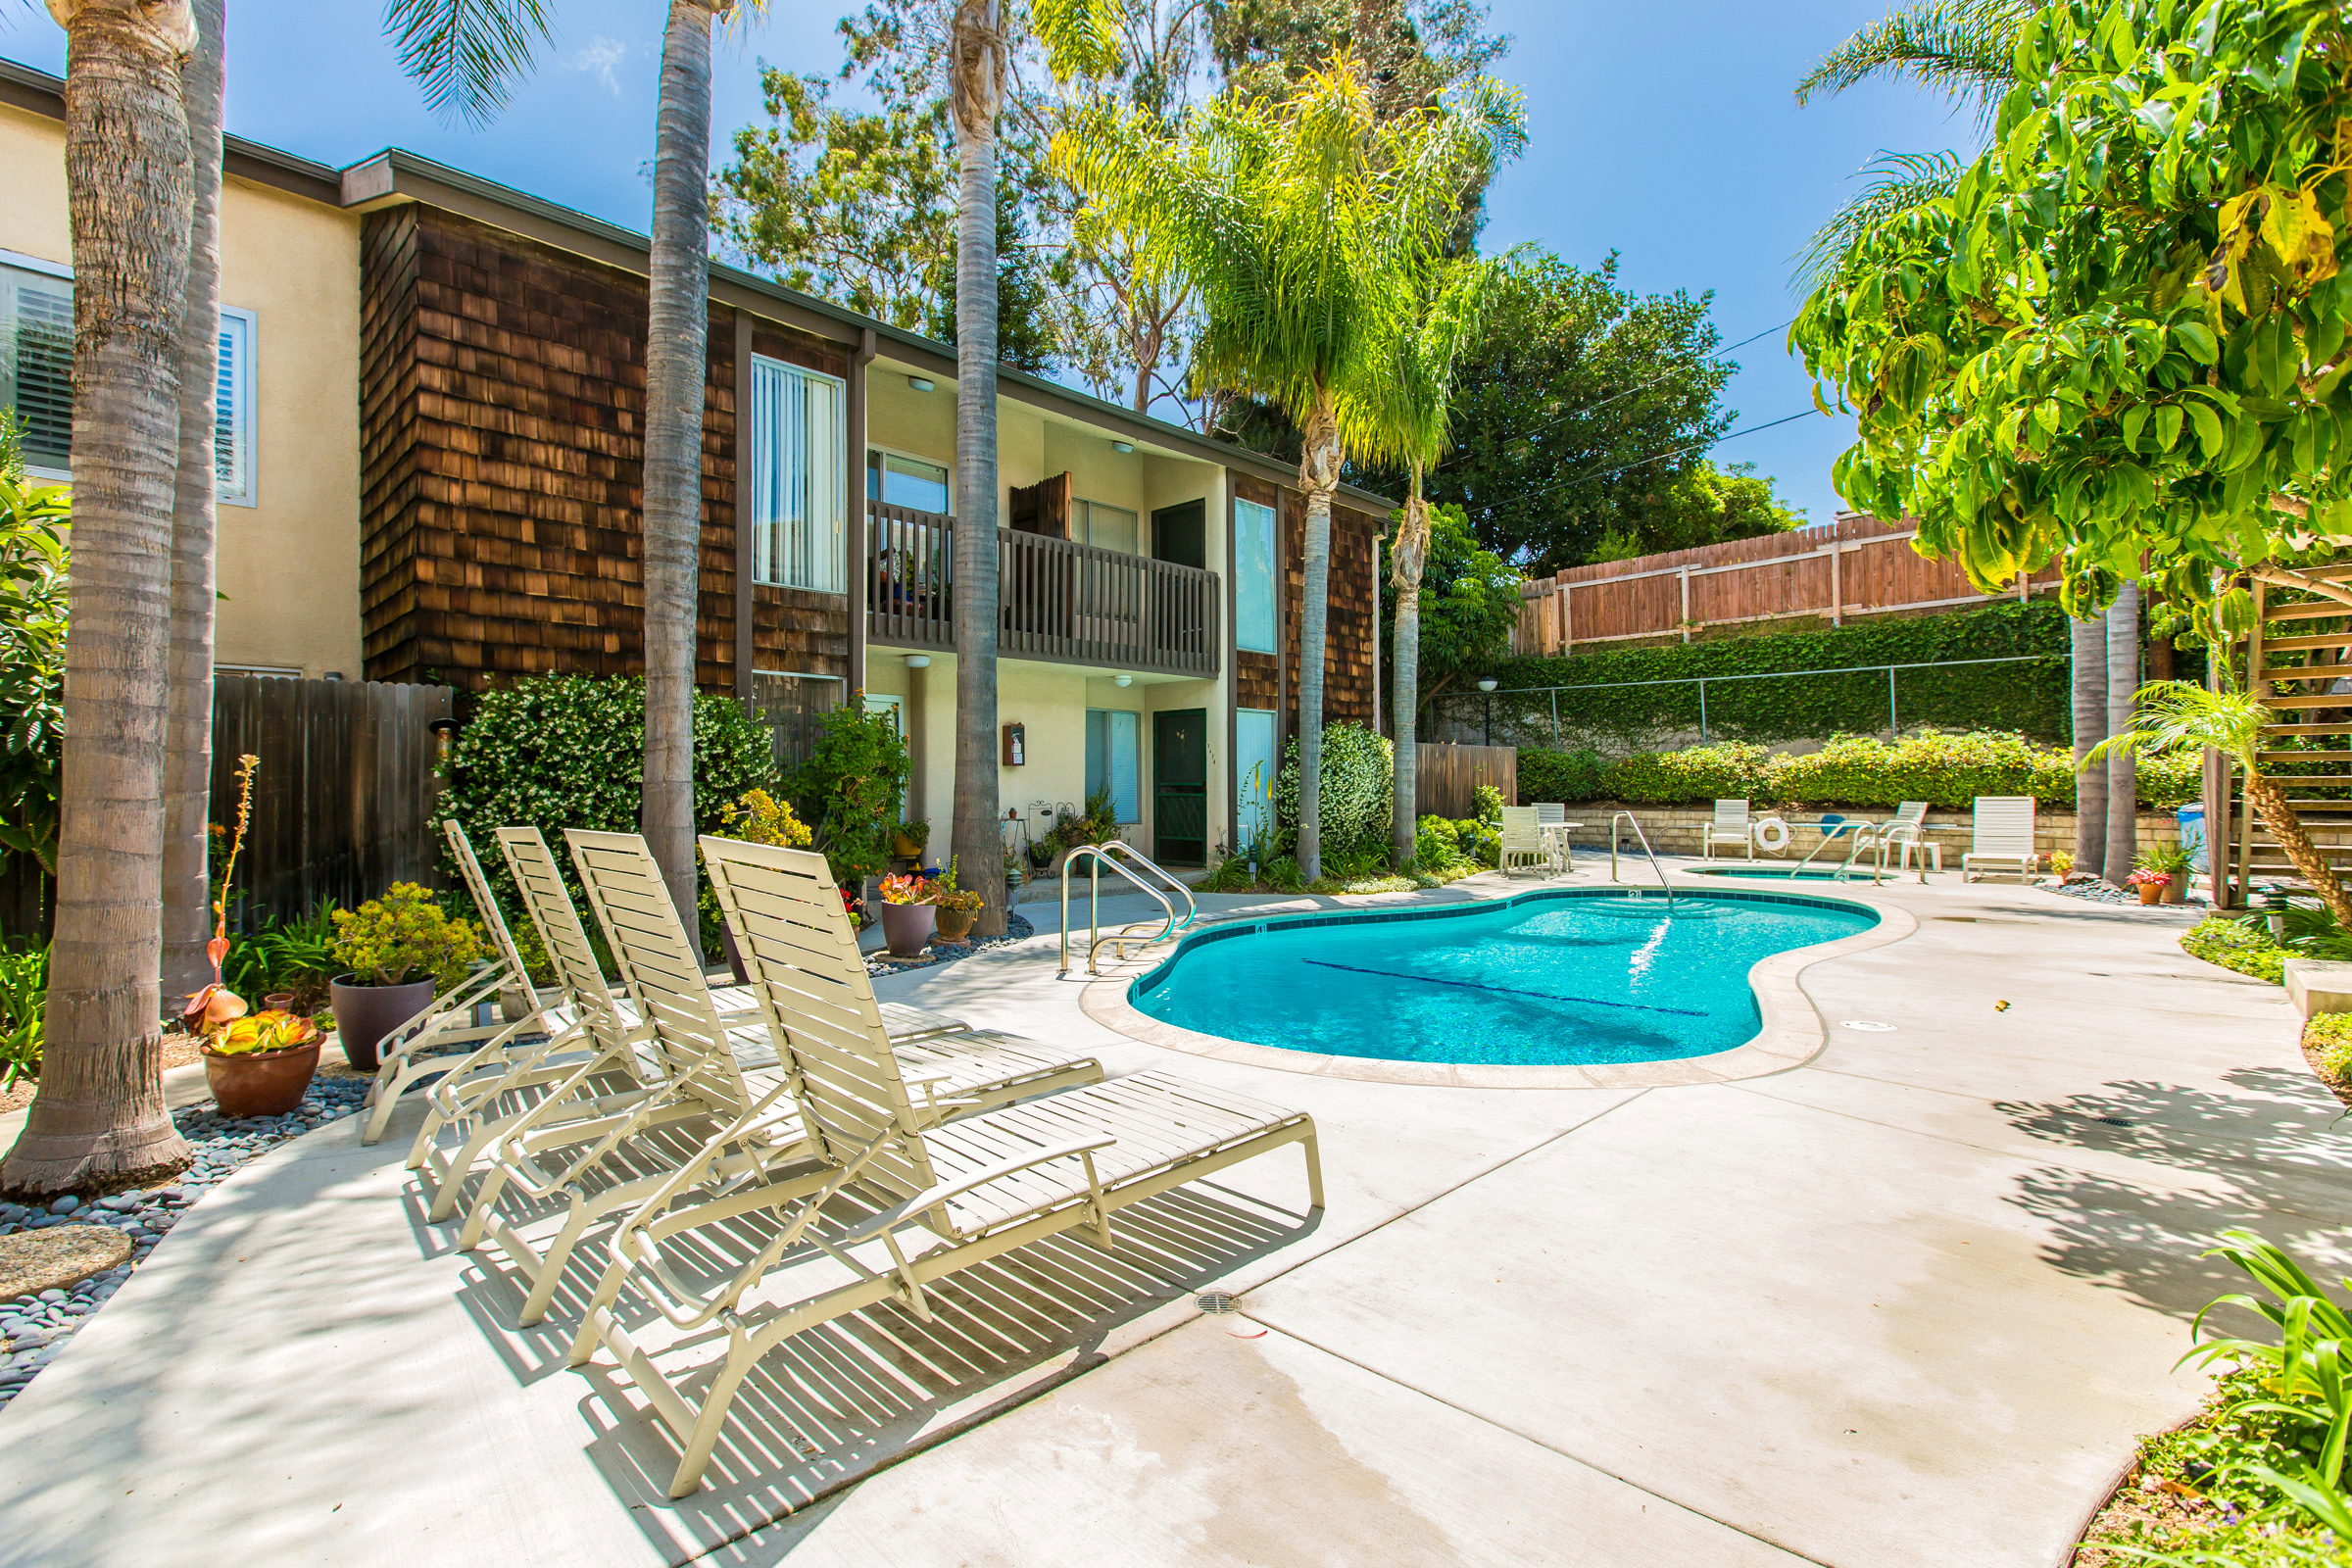 Torrance_Real_Estate_Photography-027.jpg